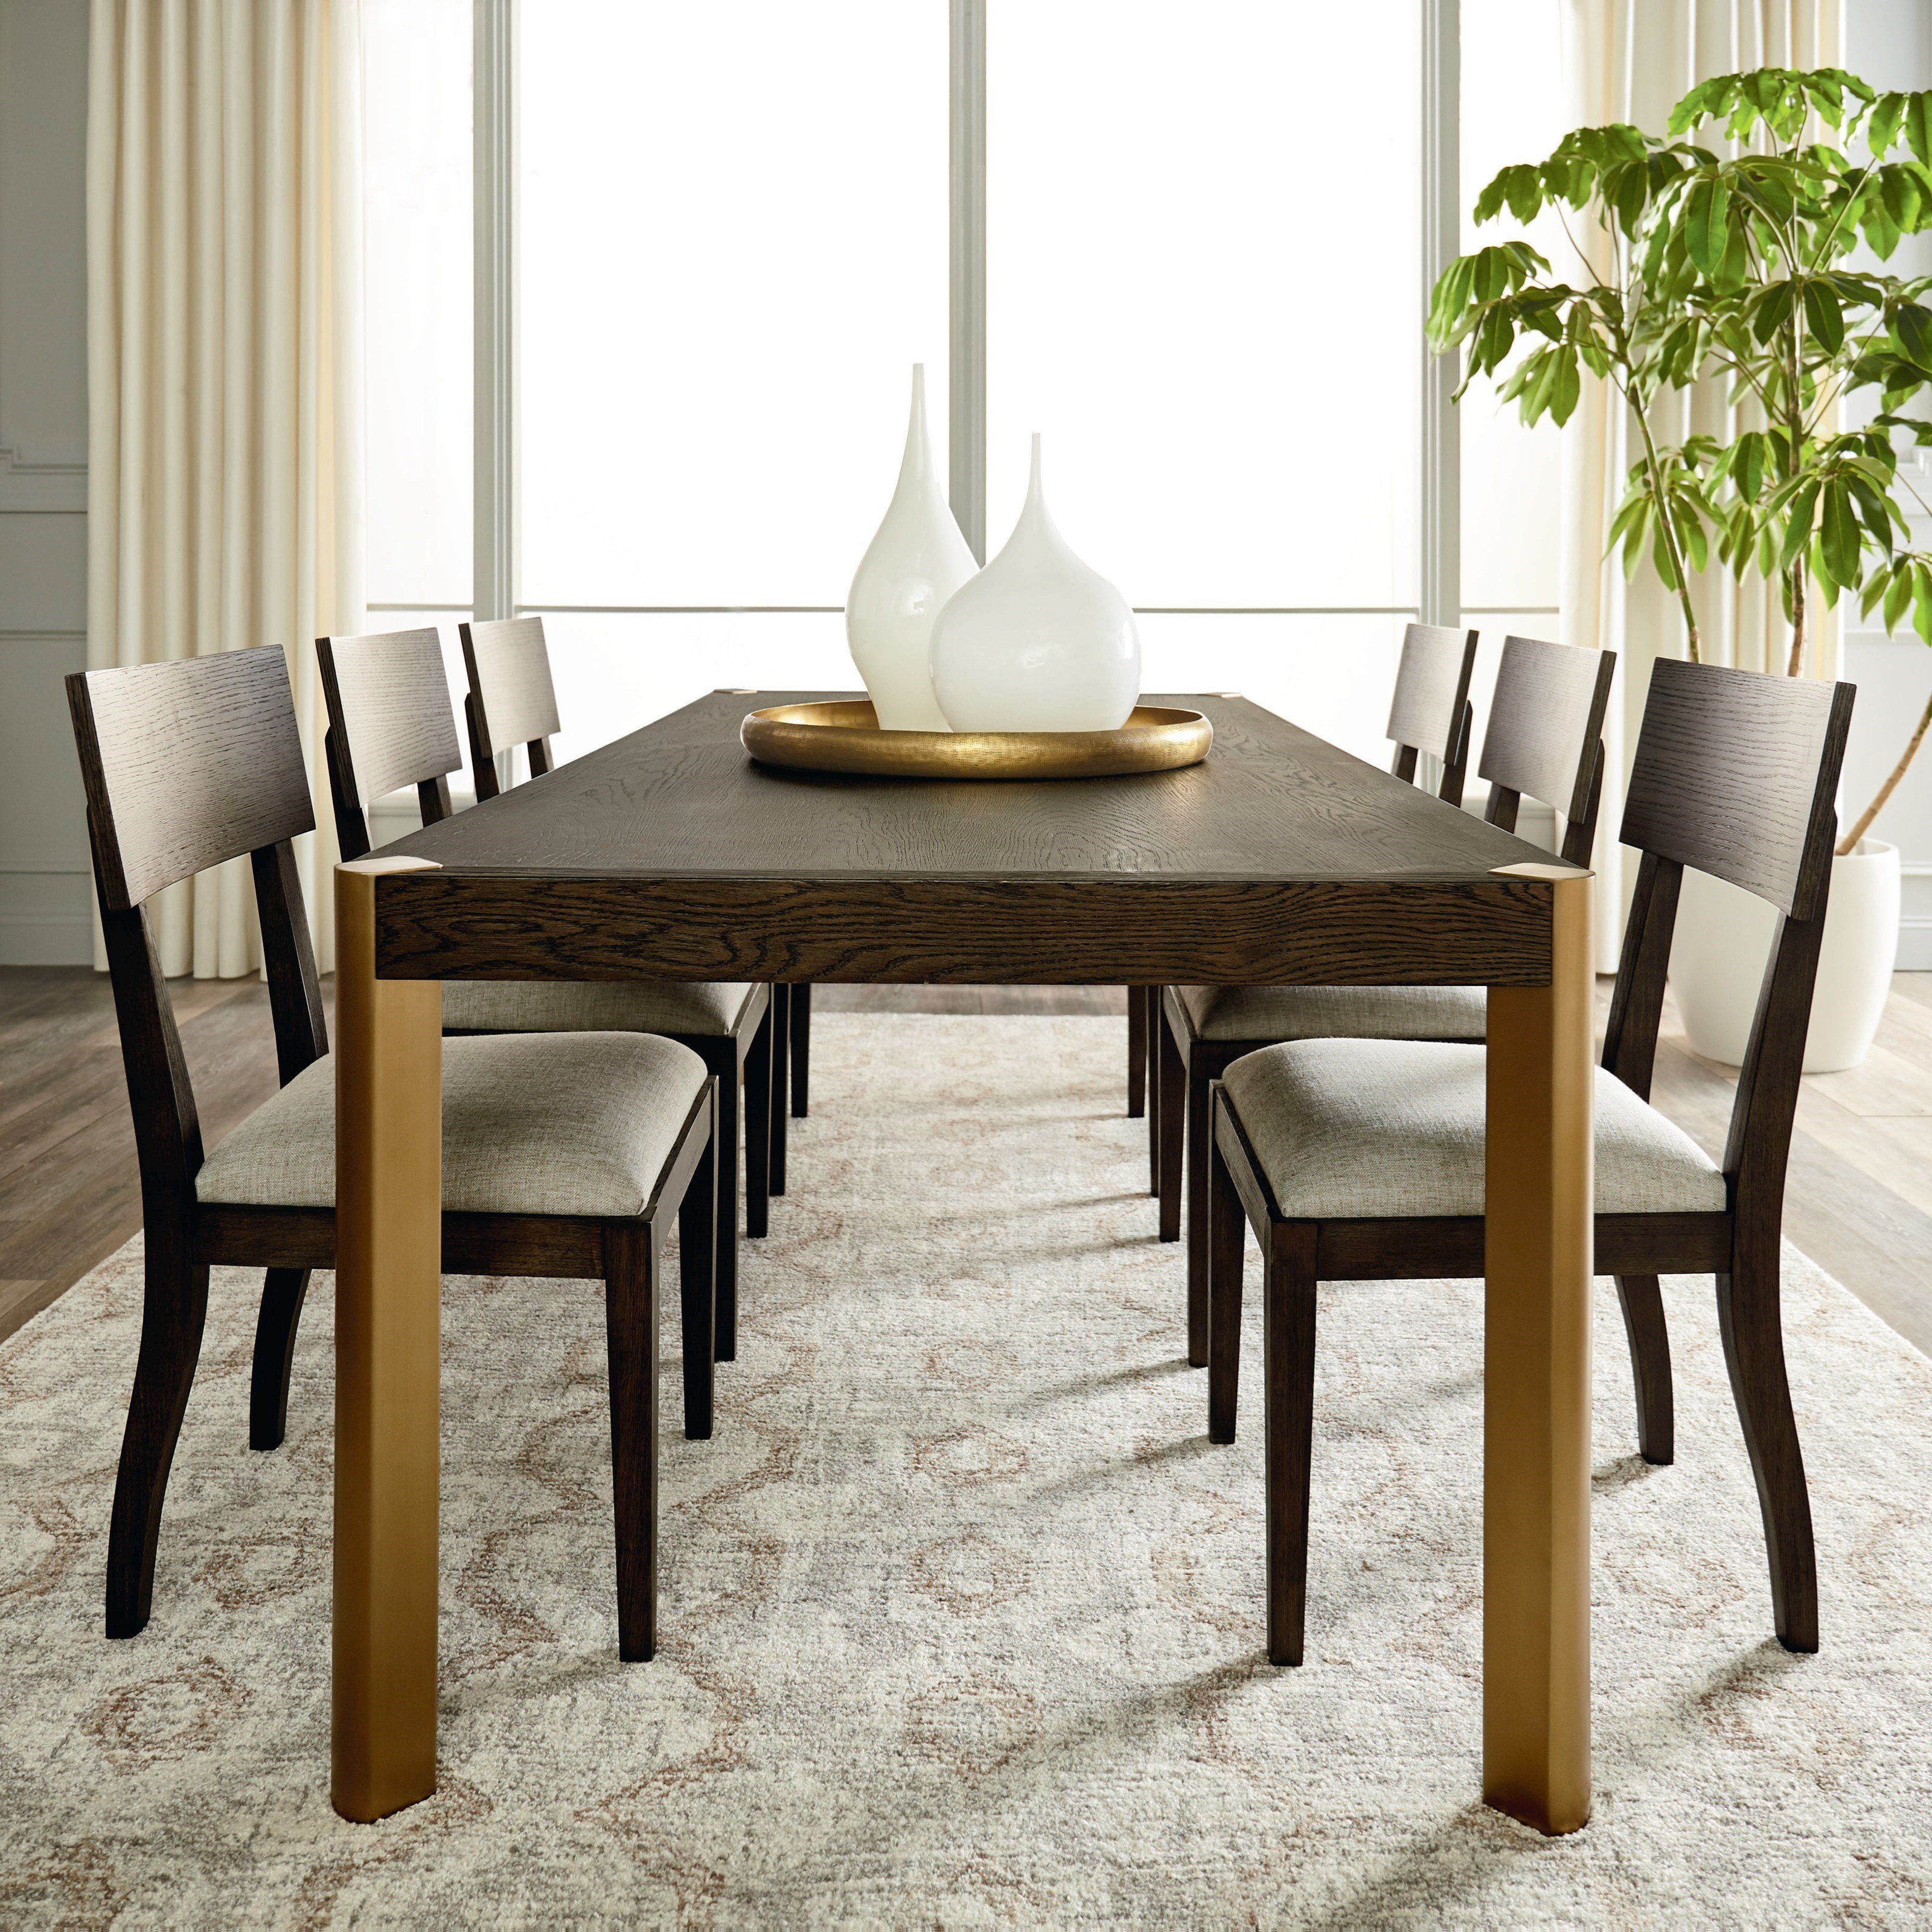 Modern - Astor and Rivoli 7-Piece Table and Chair Set by Bassett at Becker Furniture